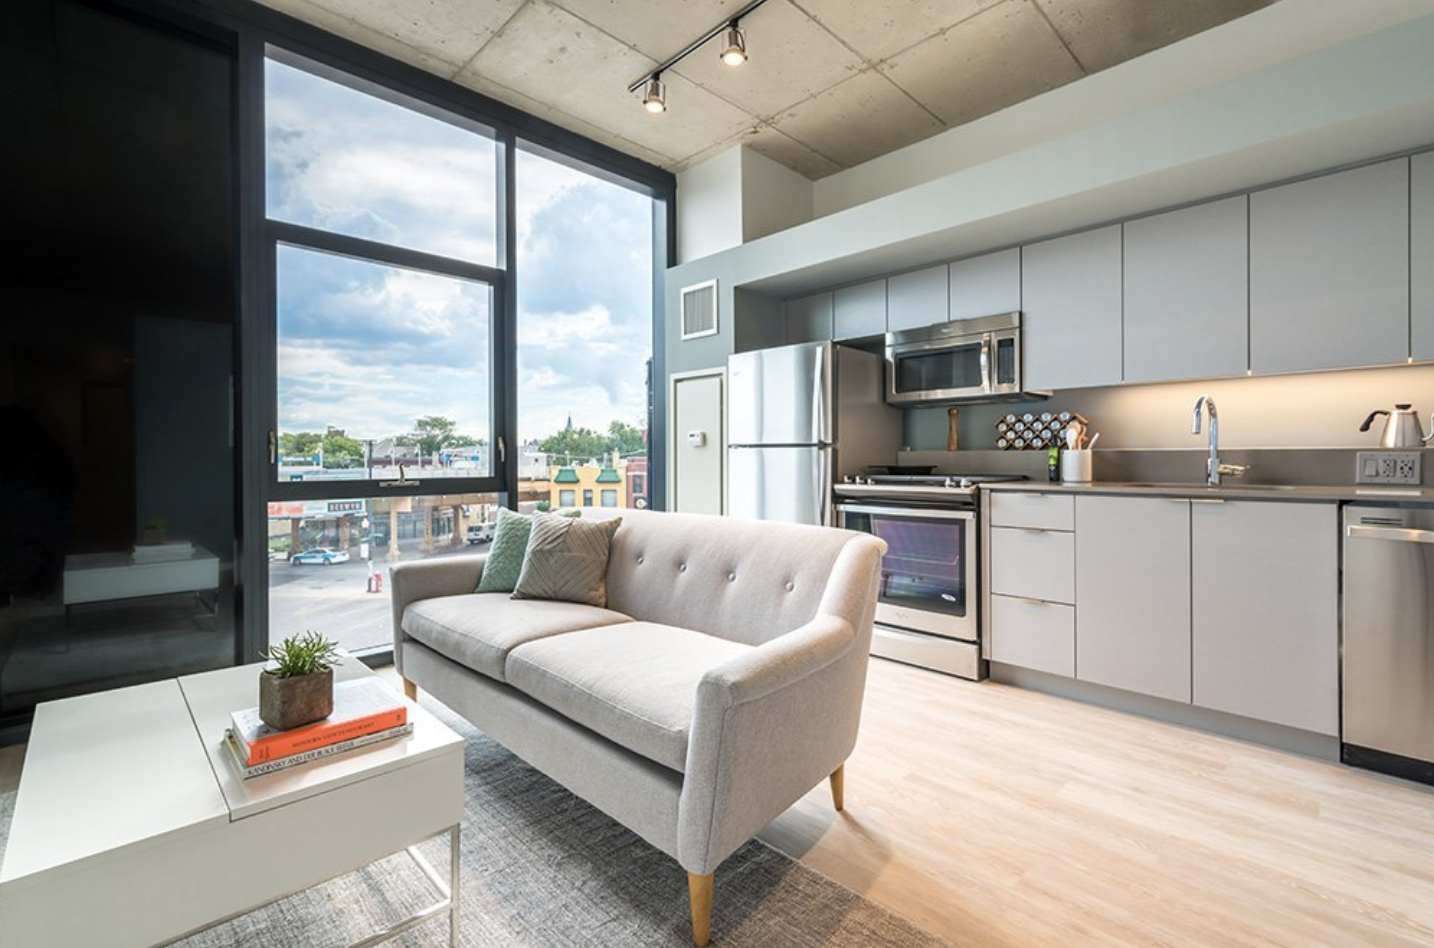 An open kitchen and living room with a small sofa, grey cabinets, and a large floor-to-ceiling window.